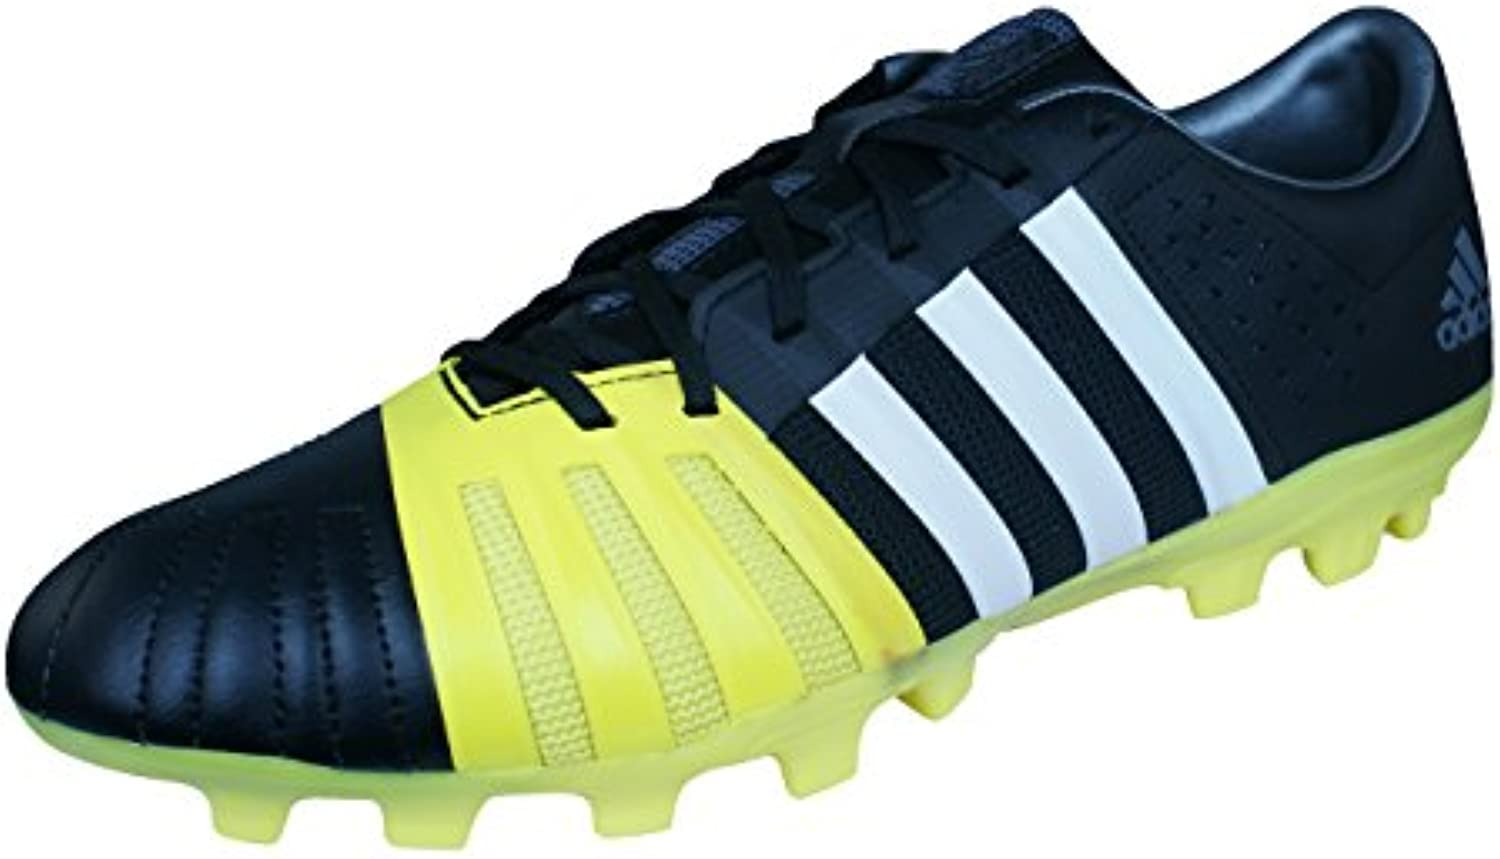 adidas FF80 Pro 2.0 AG Männer Rugby Boots